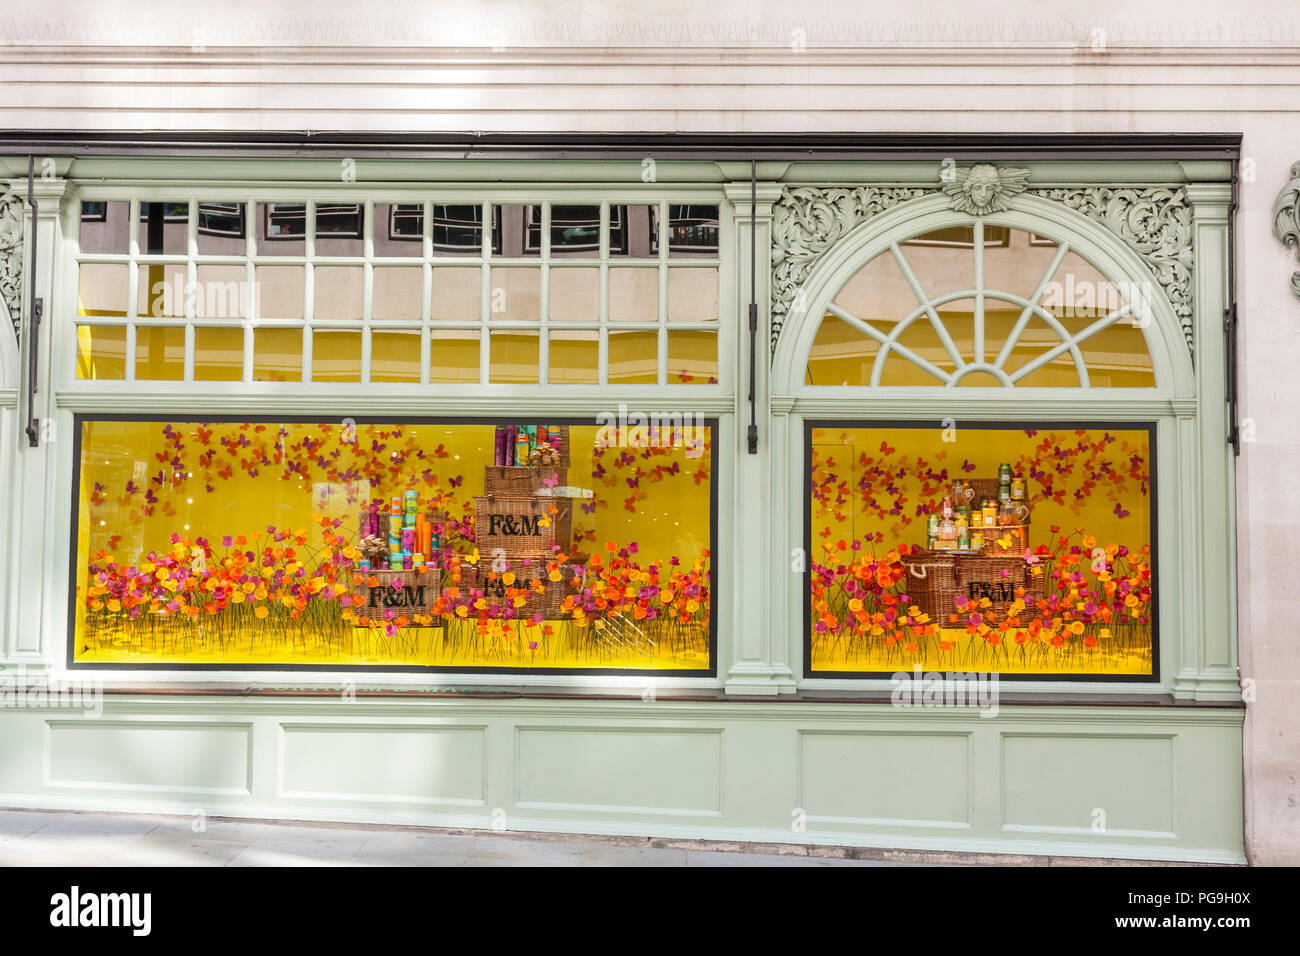 Summer window display of Fortnum & Mason, department store. Piccadilly, London, 2018 - Stock Image